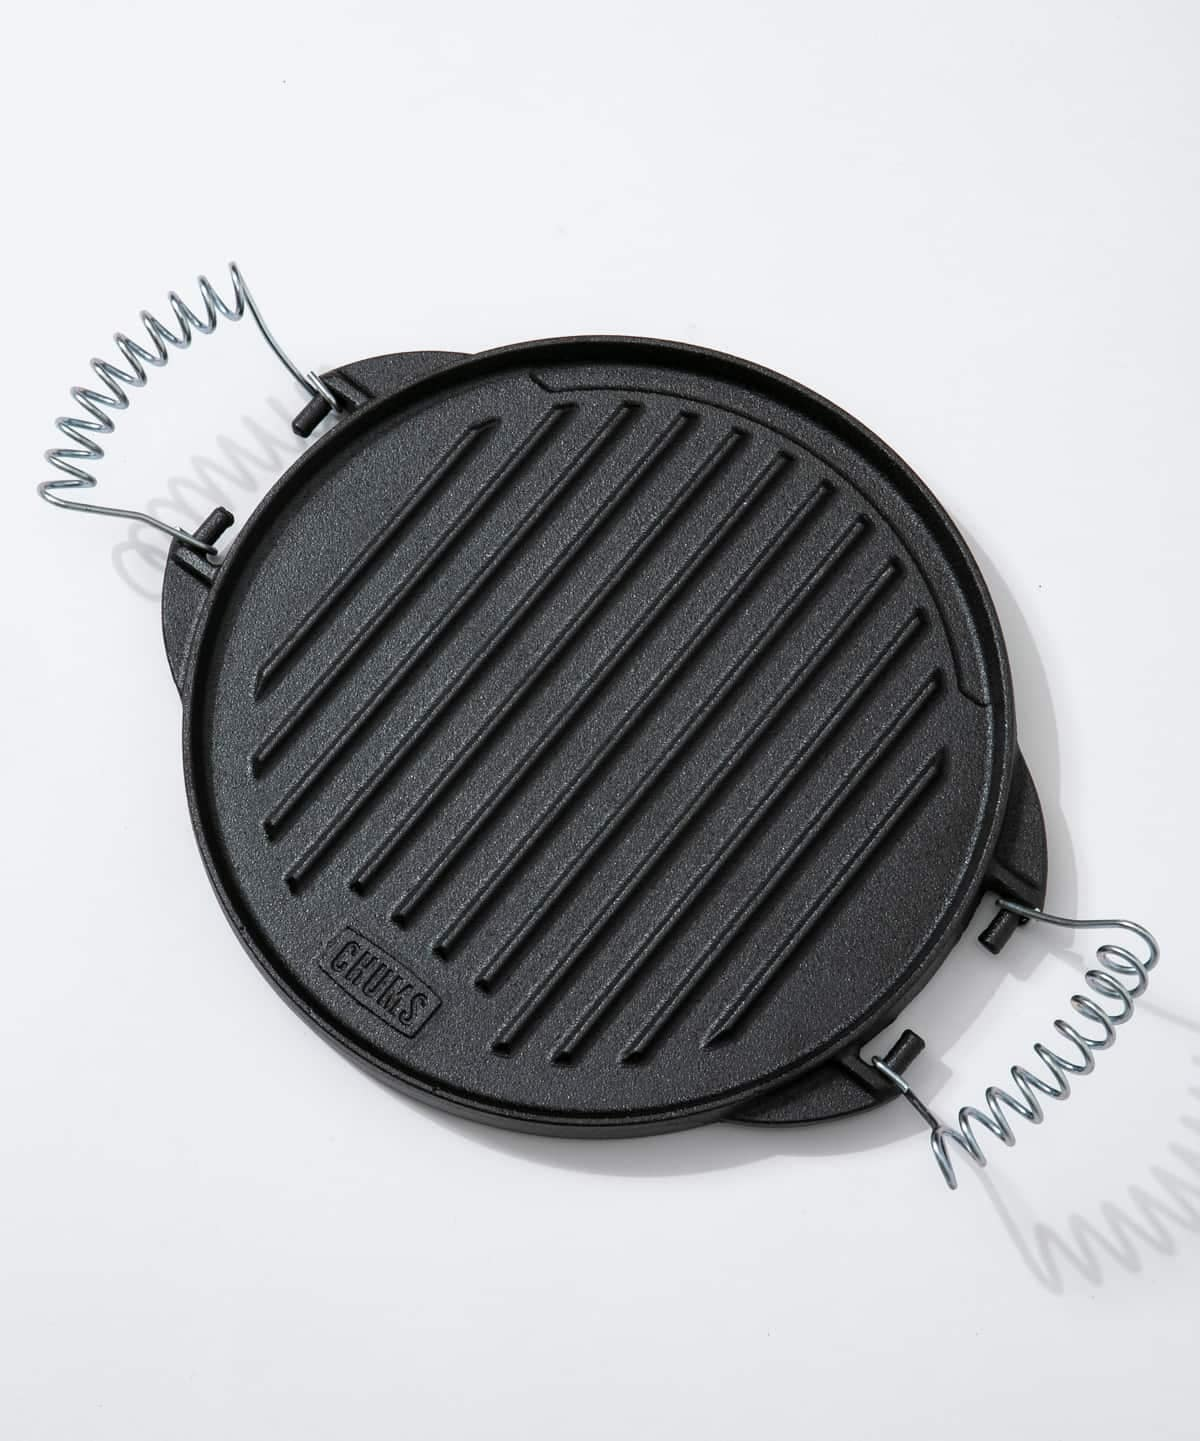 Reversible Grill Plate Oval(リバーシブルグリルプレートオーバル(調理器具/クッキング用具))